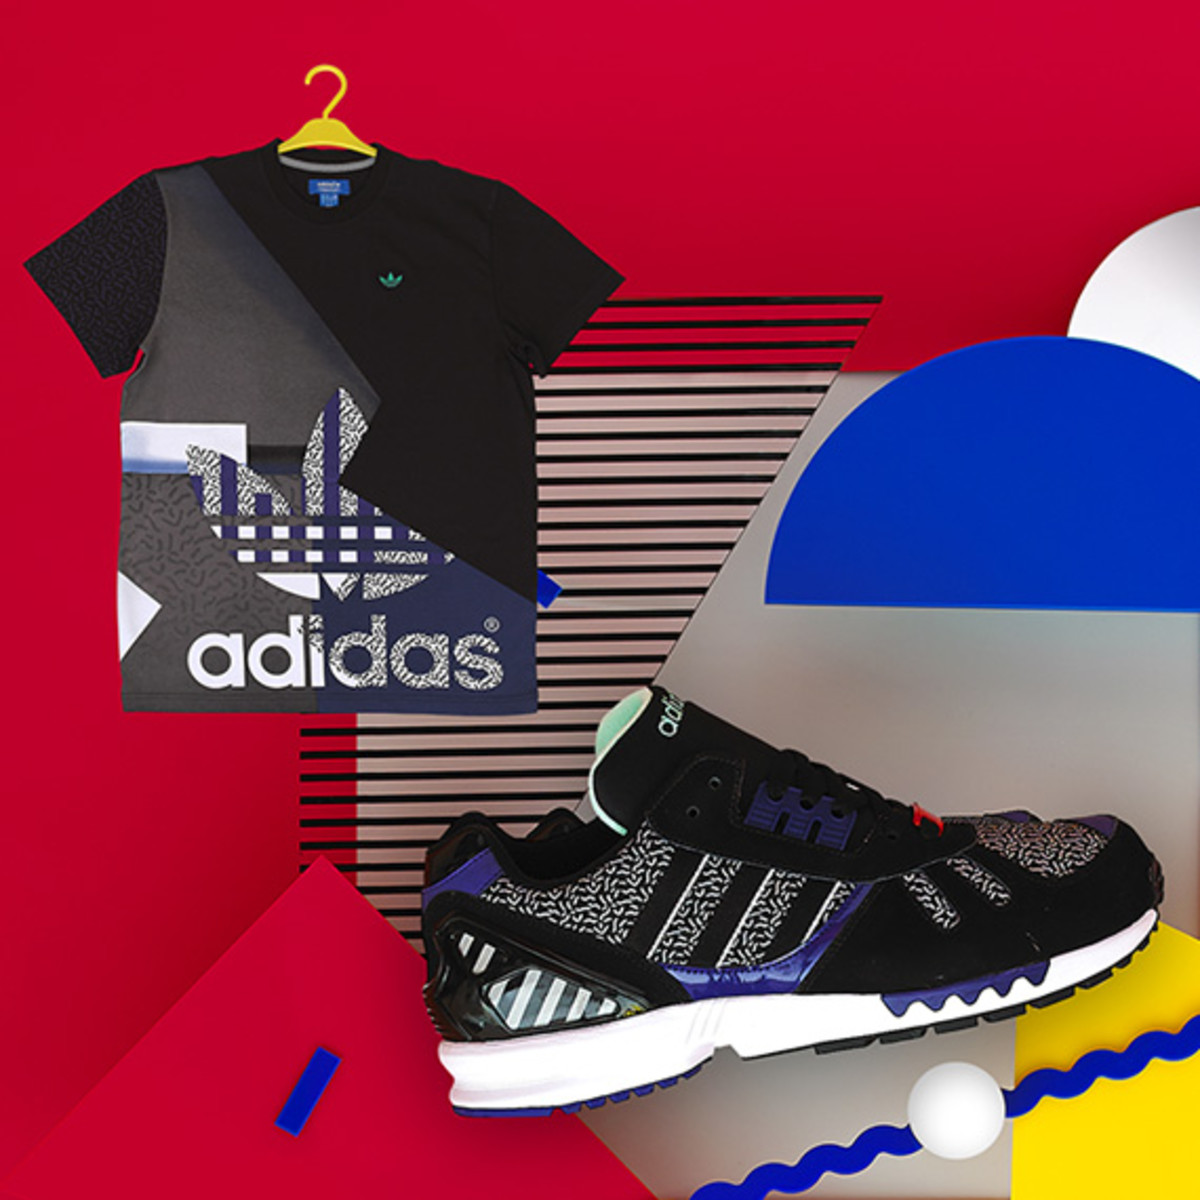 adidas-originals-select-collection-size-uk-exclusive-09